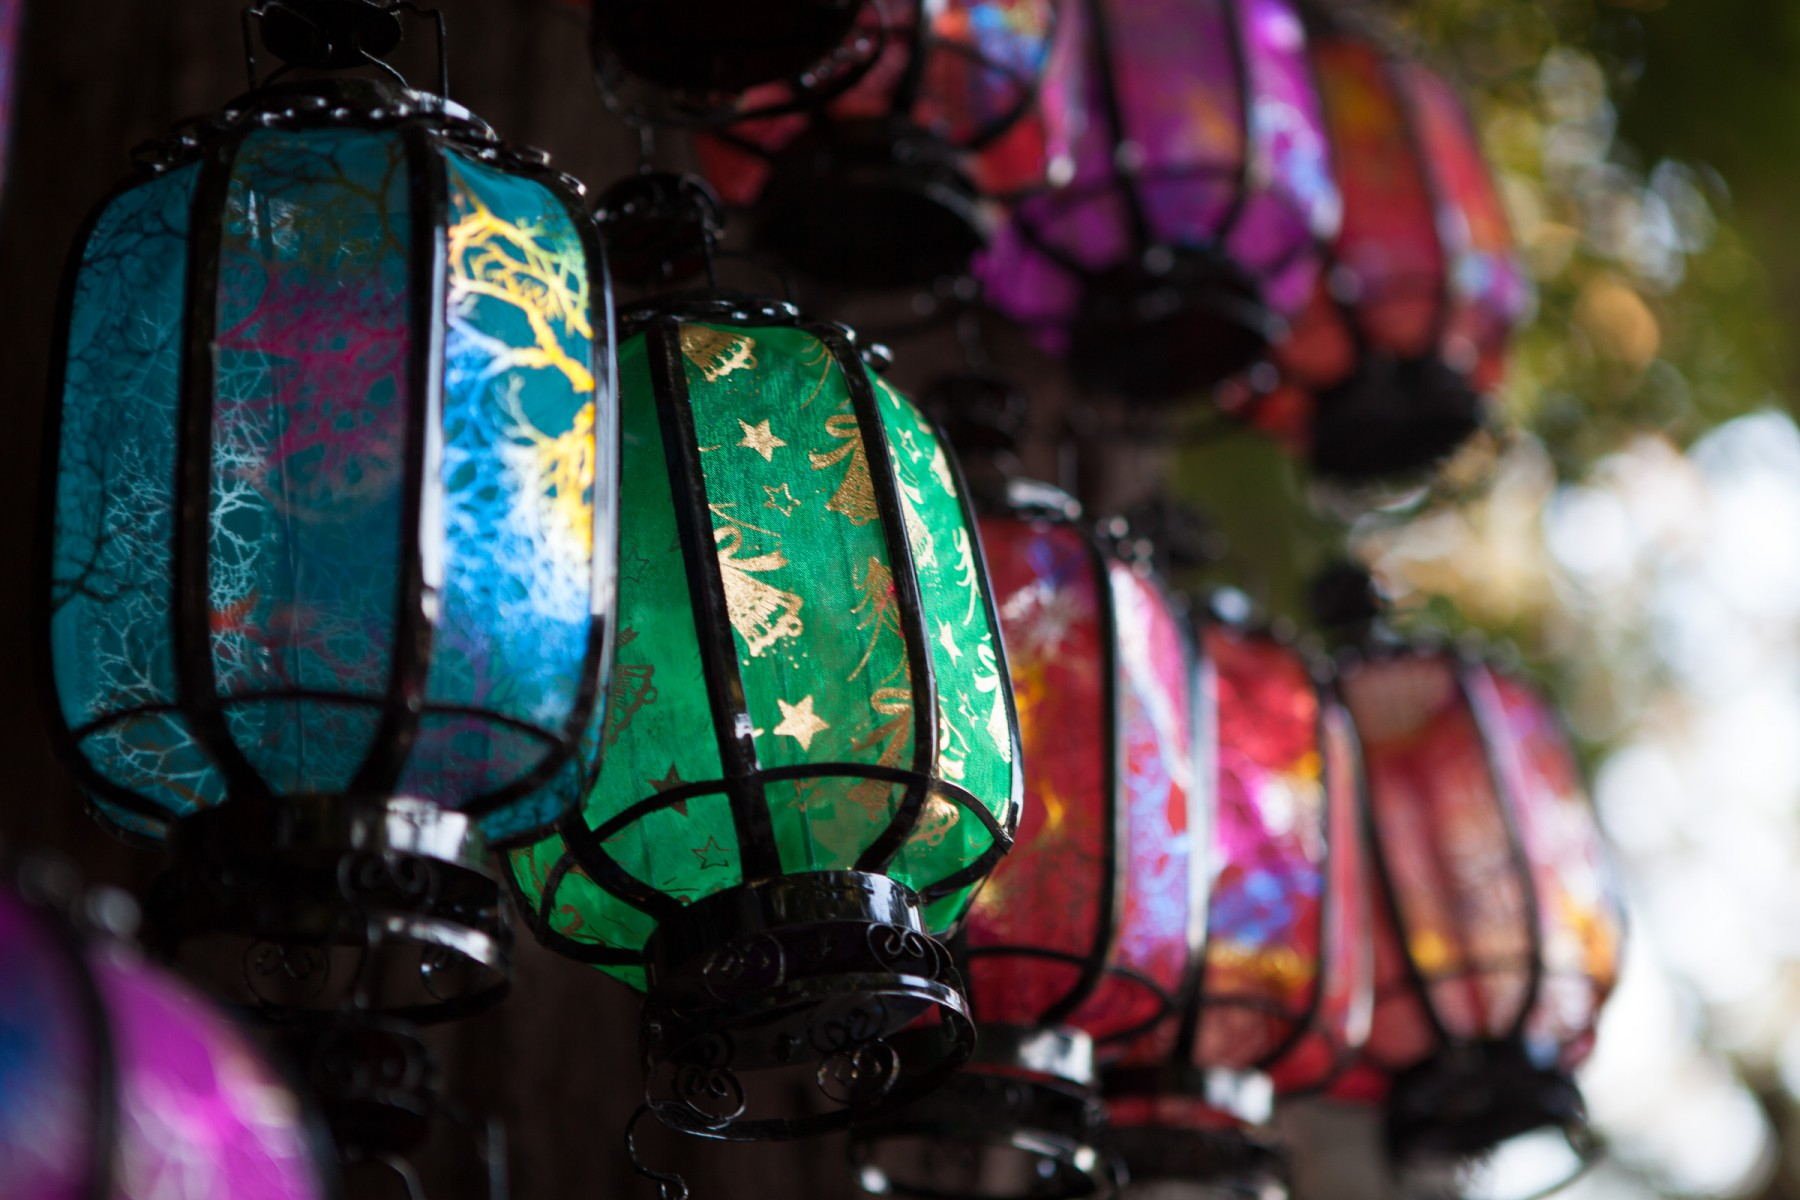 Beijing lanterns in the Xicheng District, Beijing, China.